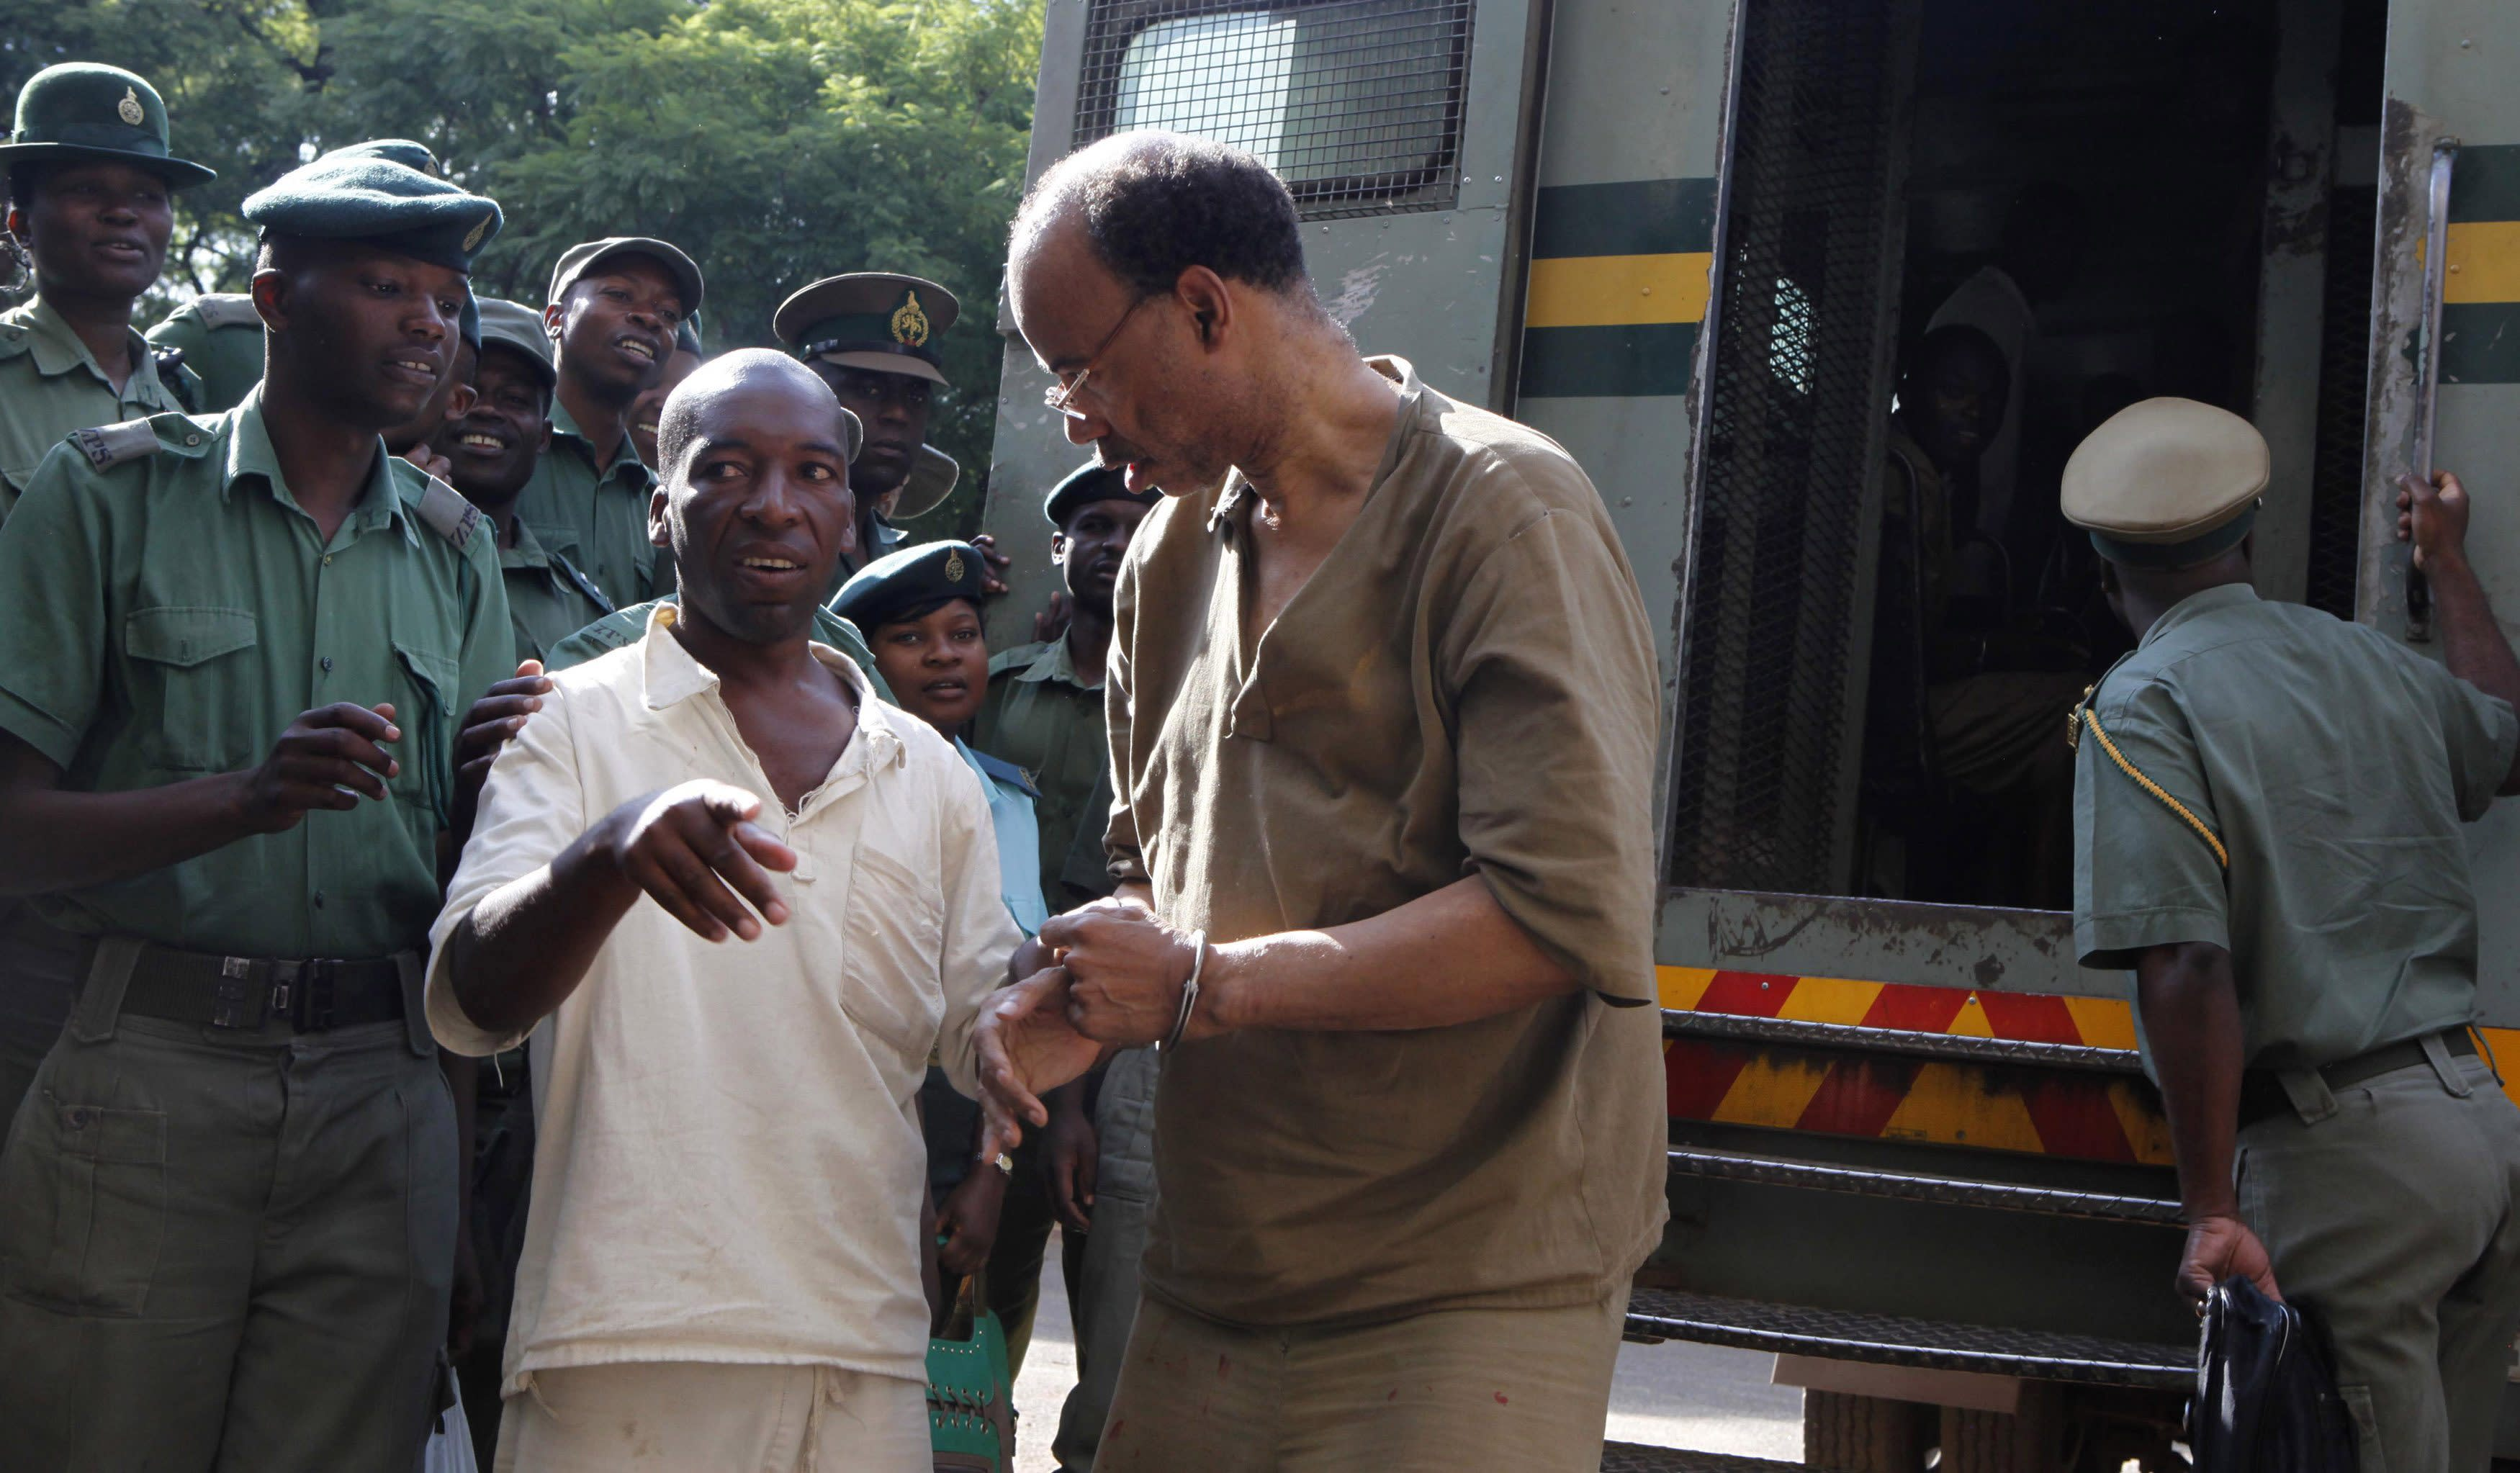 Former U.S. congressman Mel Reynolds (C) arrives at the Harare Magistrates court, February 20, 2014. Reynolds pleaded not guilty on Wednesday to charges of possessing pornographic images and videos, two days after his arrest at a hotel in Zimbabwe. Reynolds, 62, a convicted sex offender in the United States, also faces charges of staying in the southern African country without a valid visa. REUTERS/Philimon Bulawayo (ZIMBABWE - Tags: POLITICS CRIME LAW)